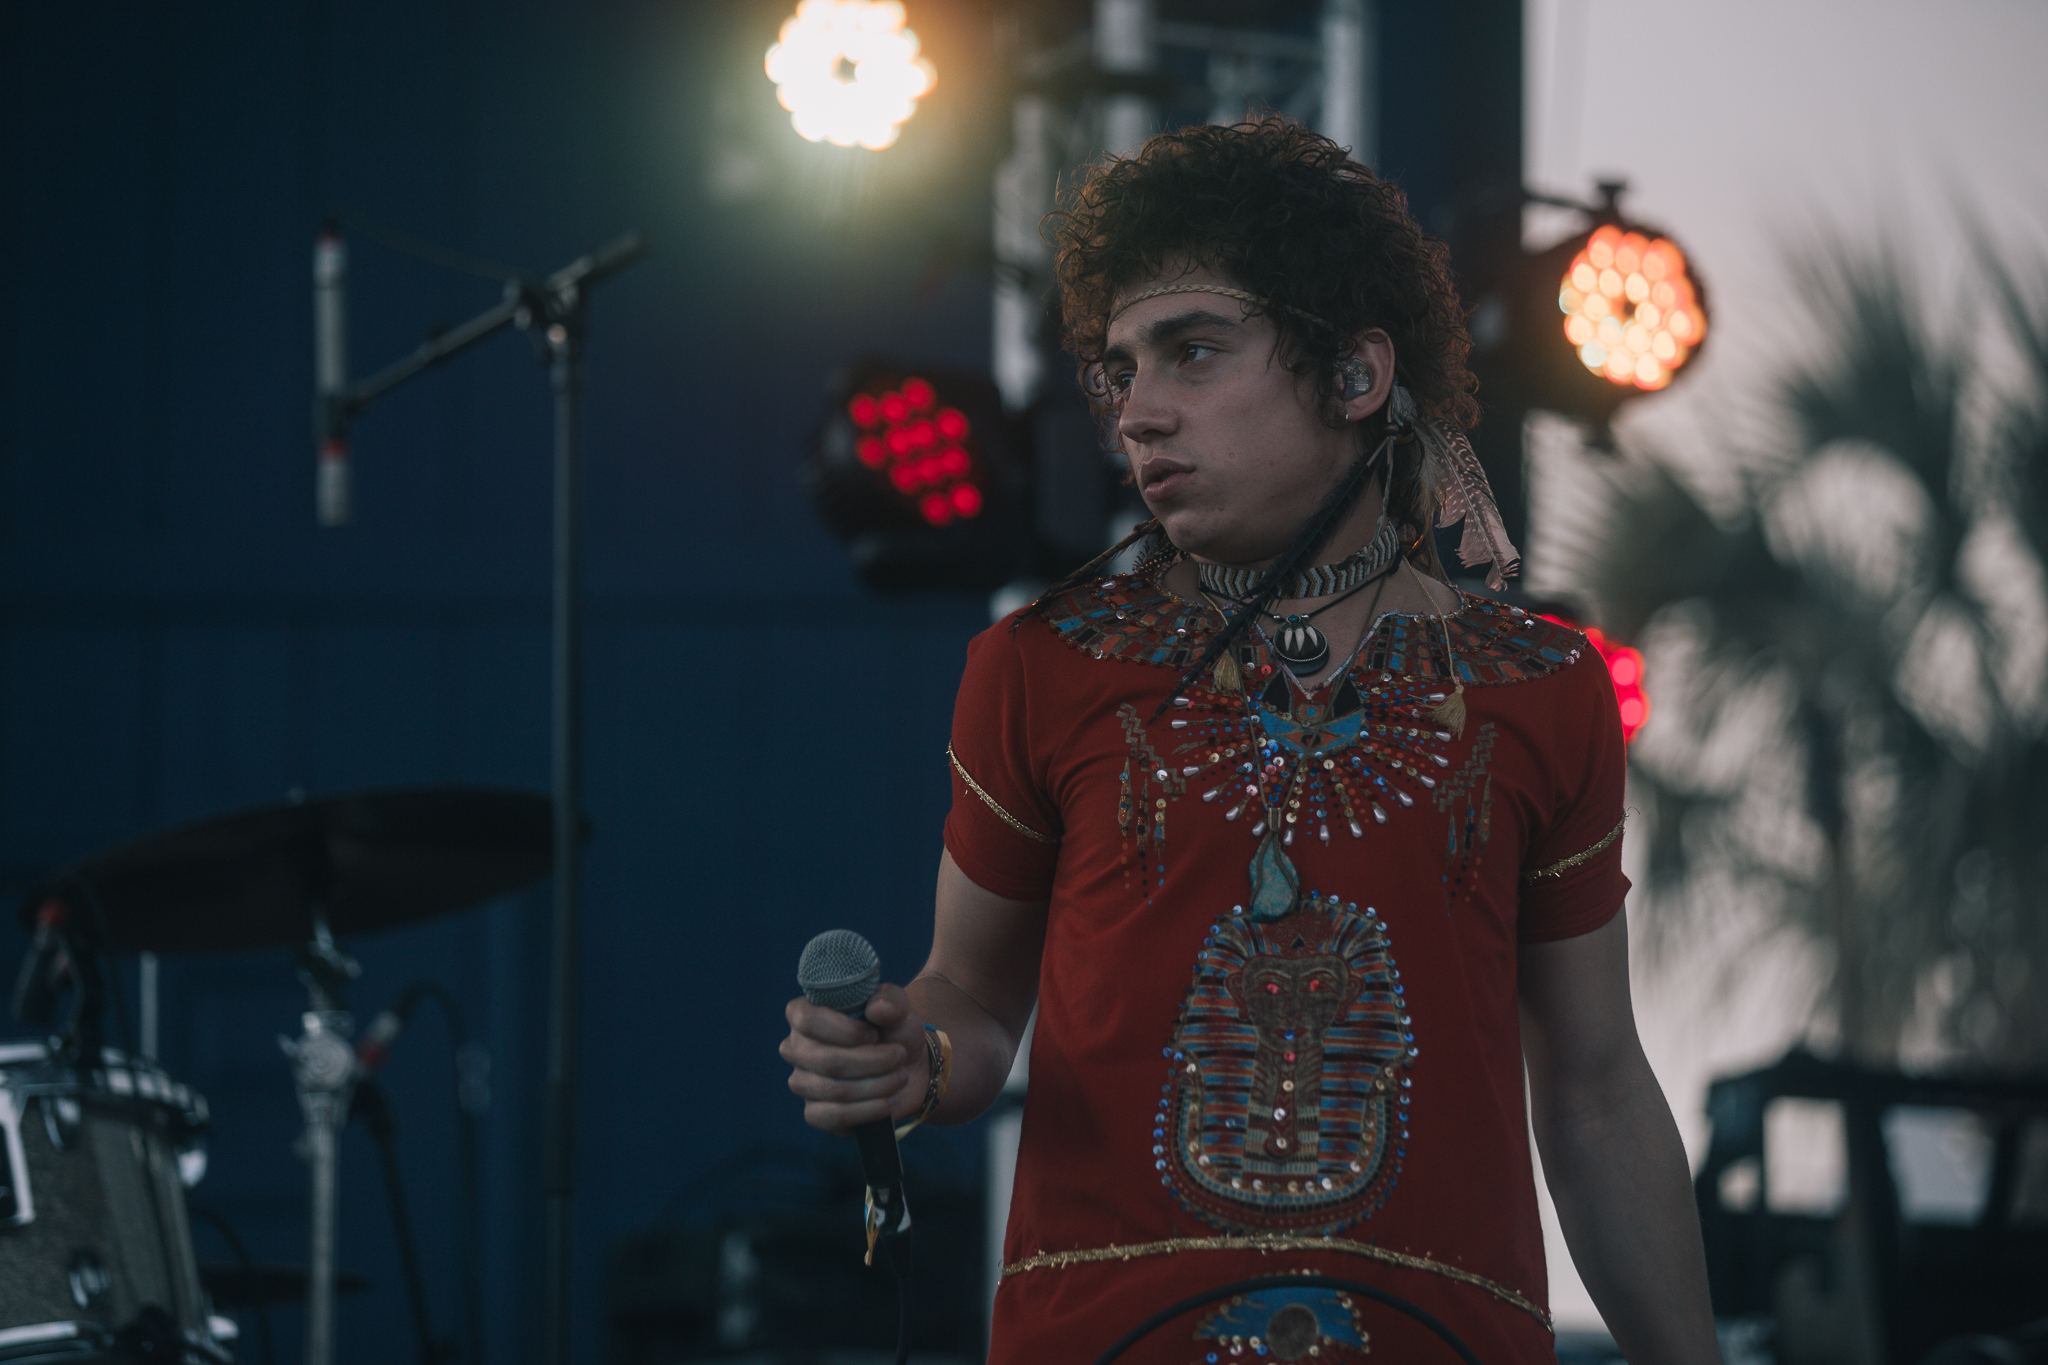 Laura Ord Photography | Austin, TX Concert Photography | Greta Van Fleet at Hangout Music Fest in Gulf Shores, AL